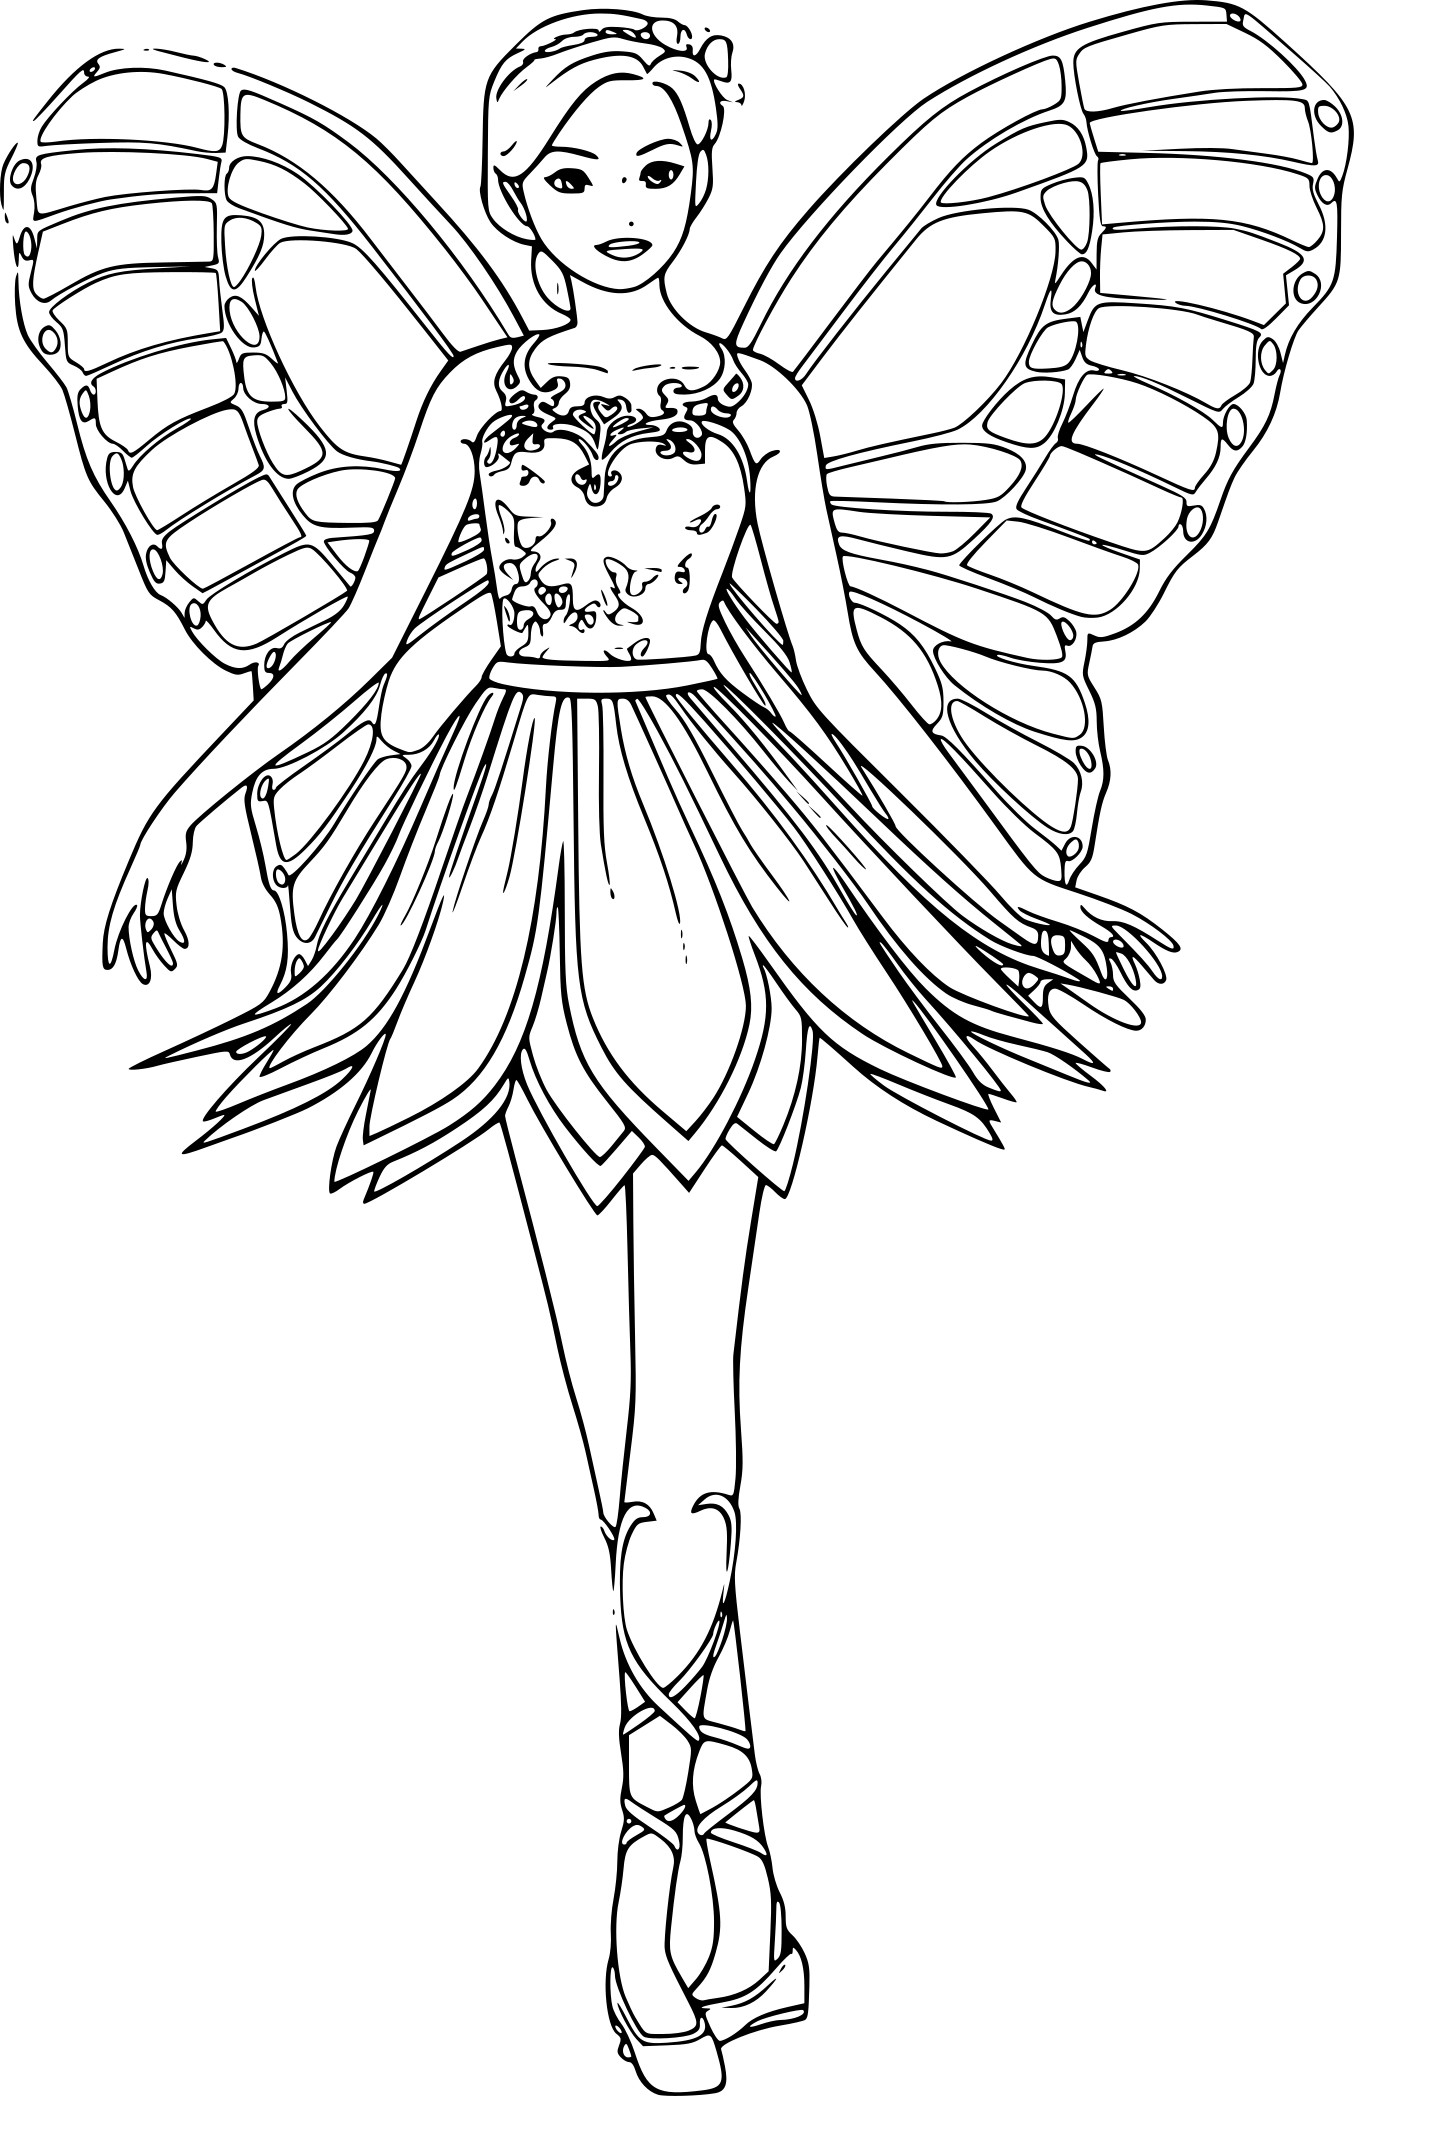 Coloriage barbie f e dessin imprimer sur coloriages info - Barbie princesse coloriage ...